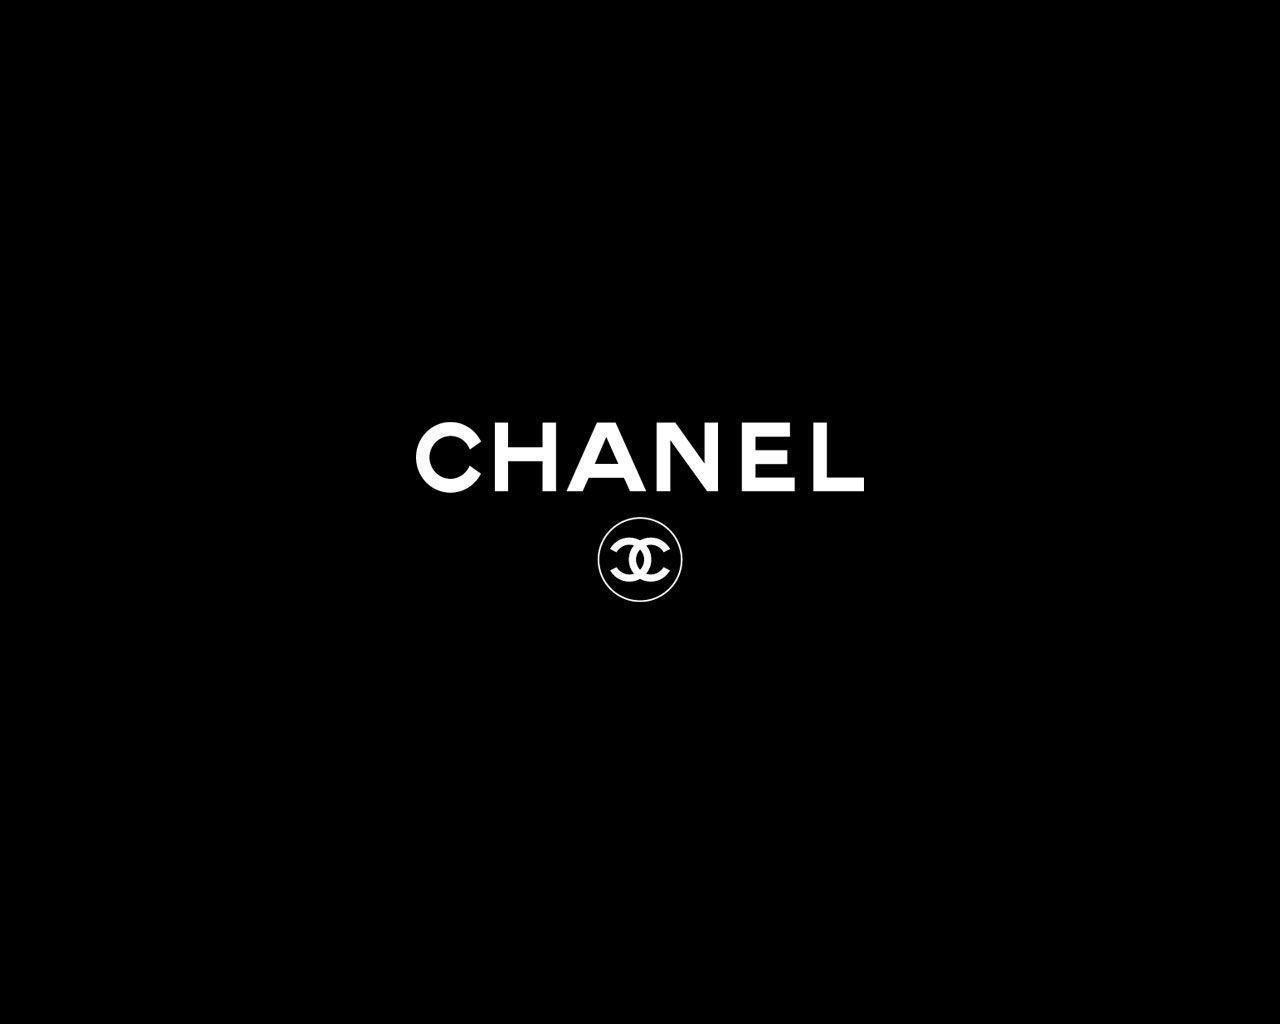 Chanel Logo Wallpapers 1280x1024